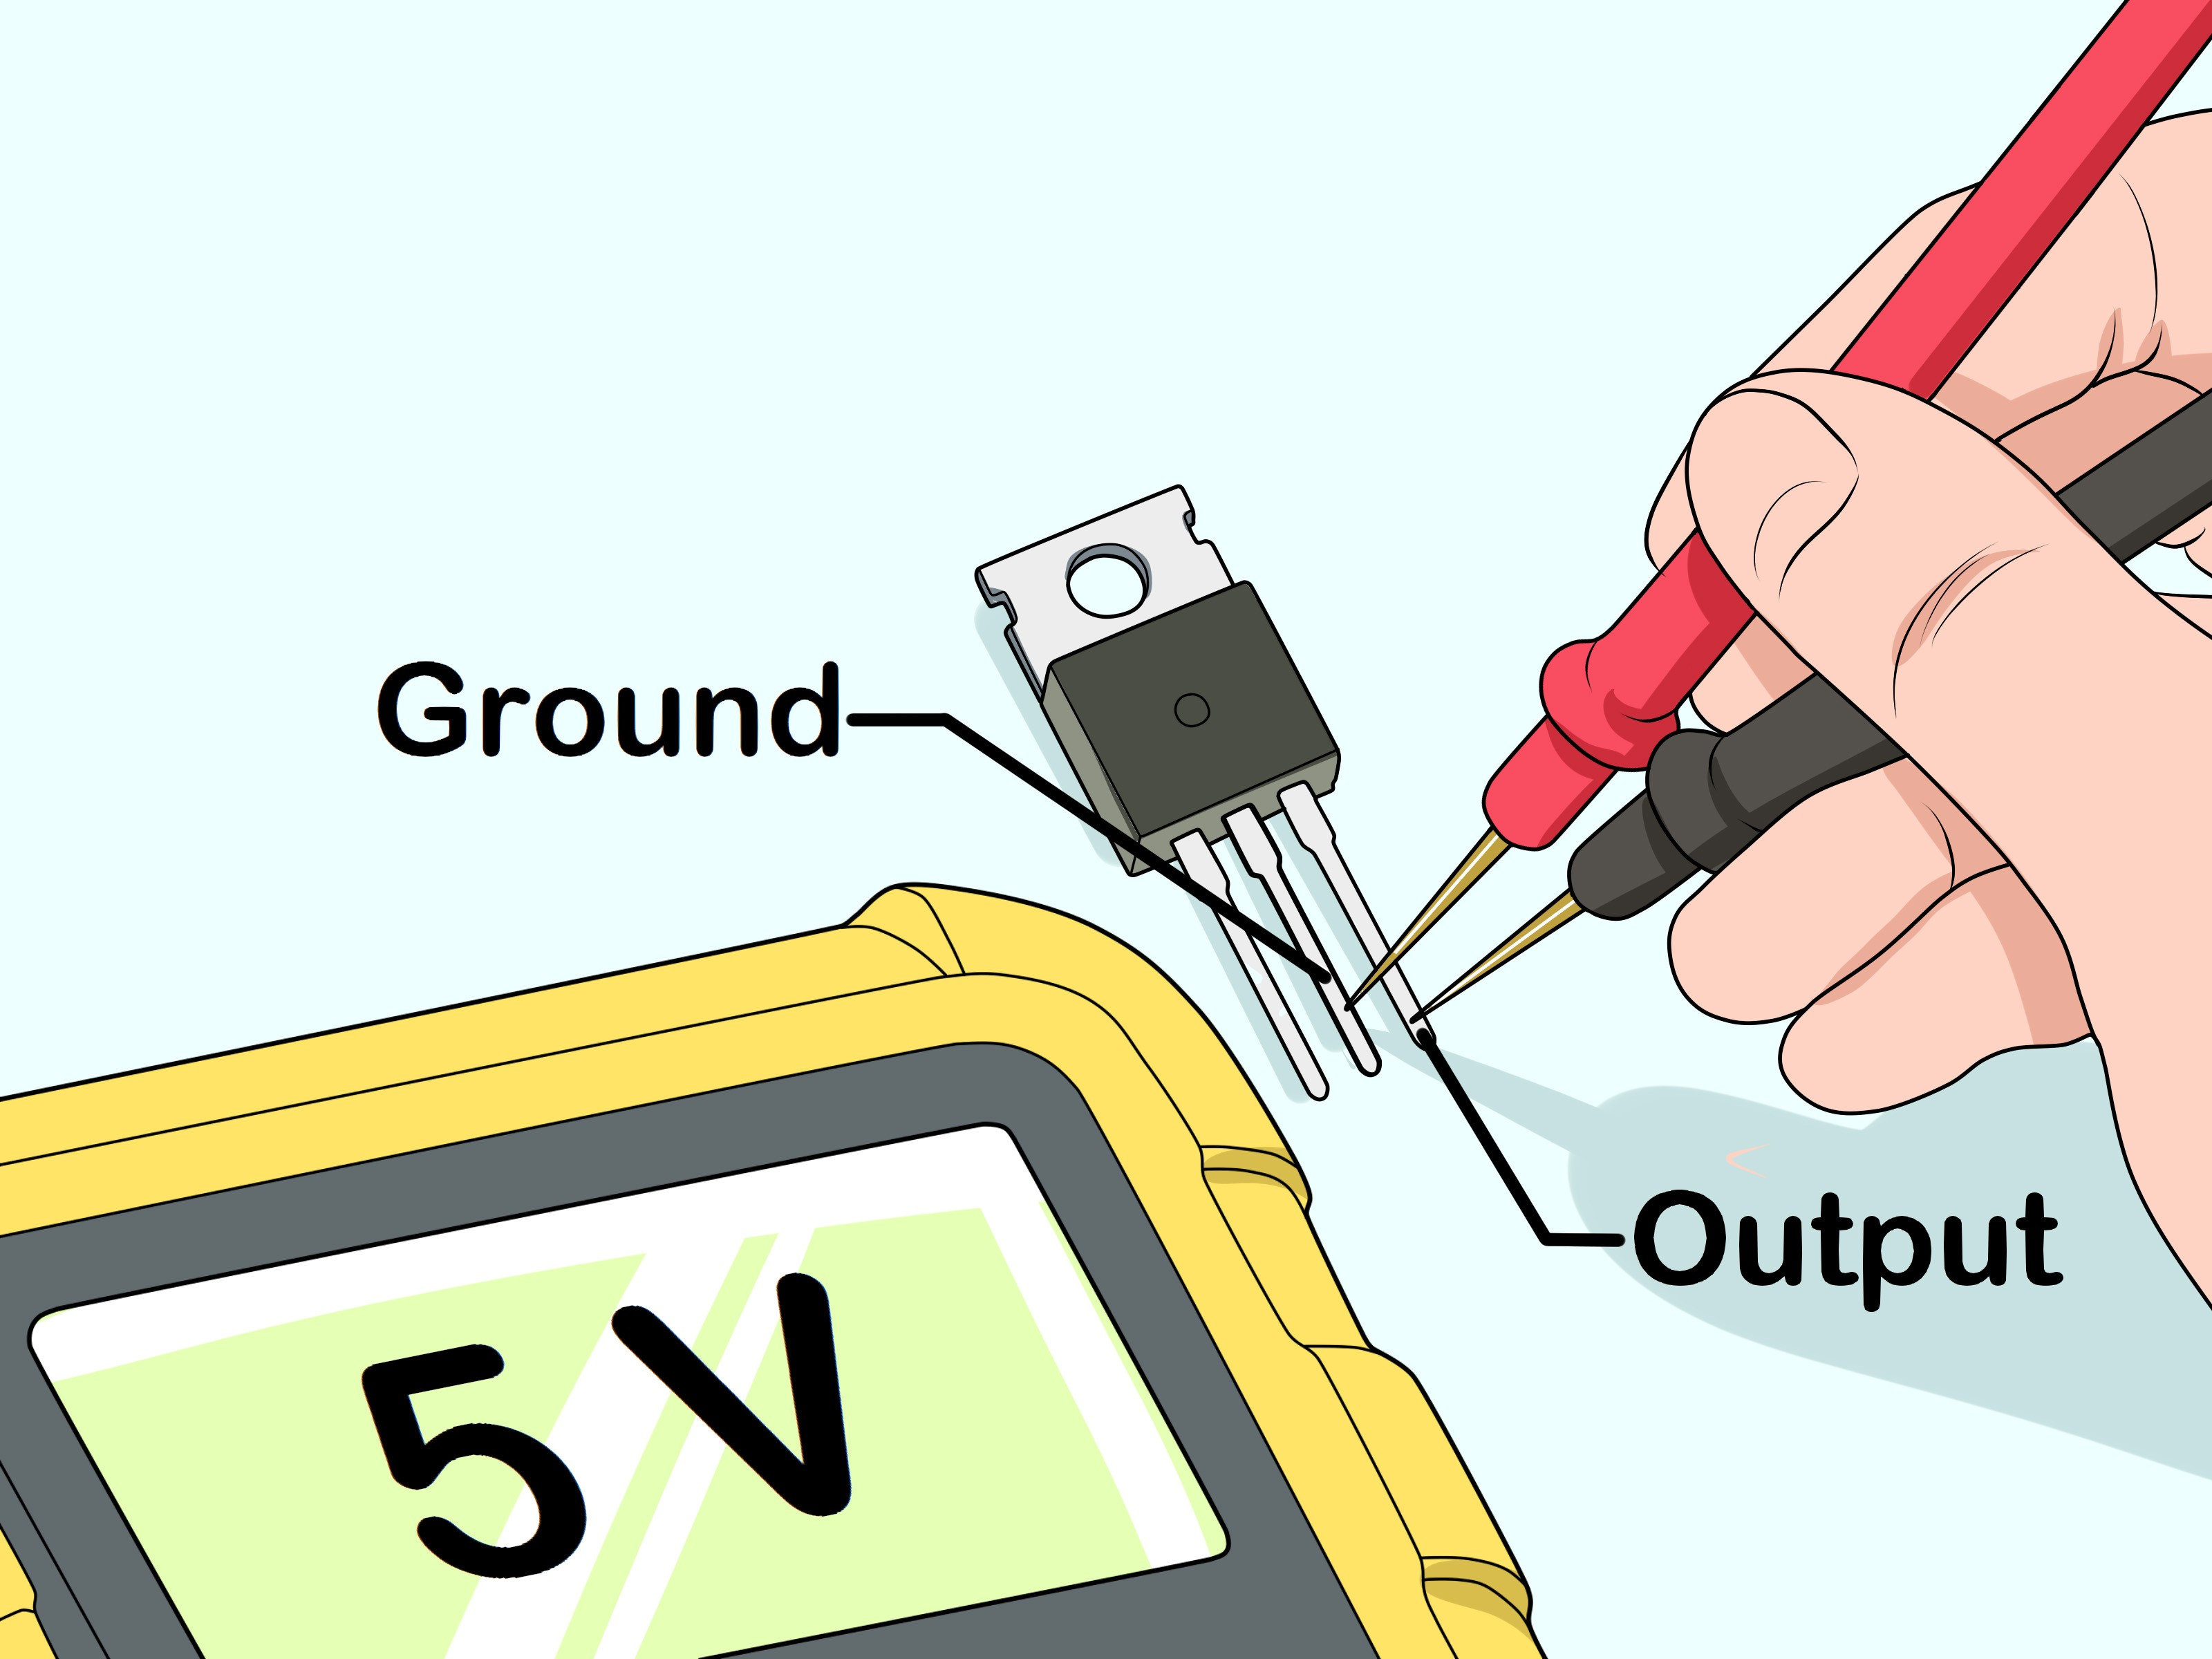 How to Wire Voltage Regulator On 2004 Club Car Golf Cart How to Test A Voltage Regulator 12 Steps with Of How to Wire Voltage Regulator On 2004 Club Car Golf Cart New Mitsubishi Generator Wiring Diagram Diagram